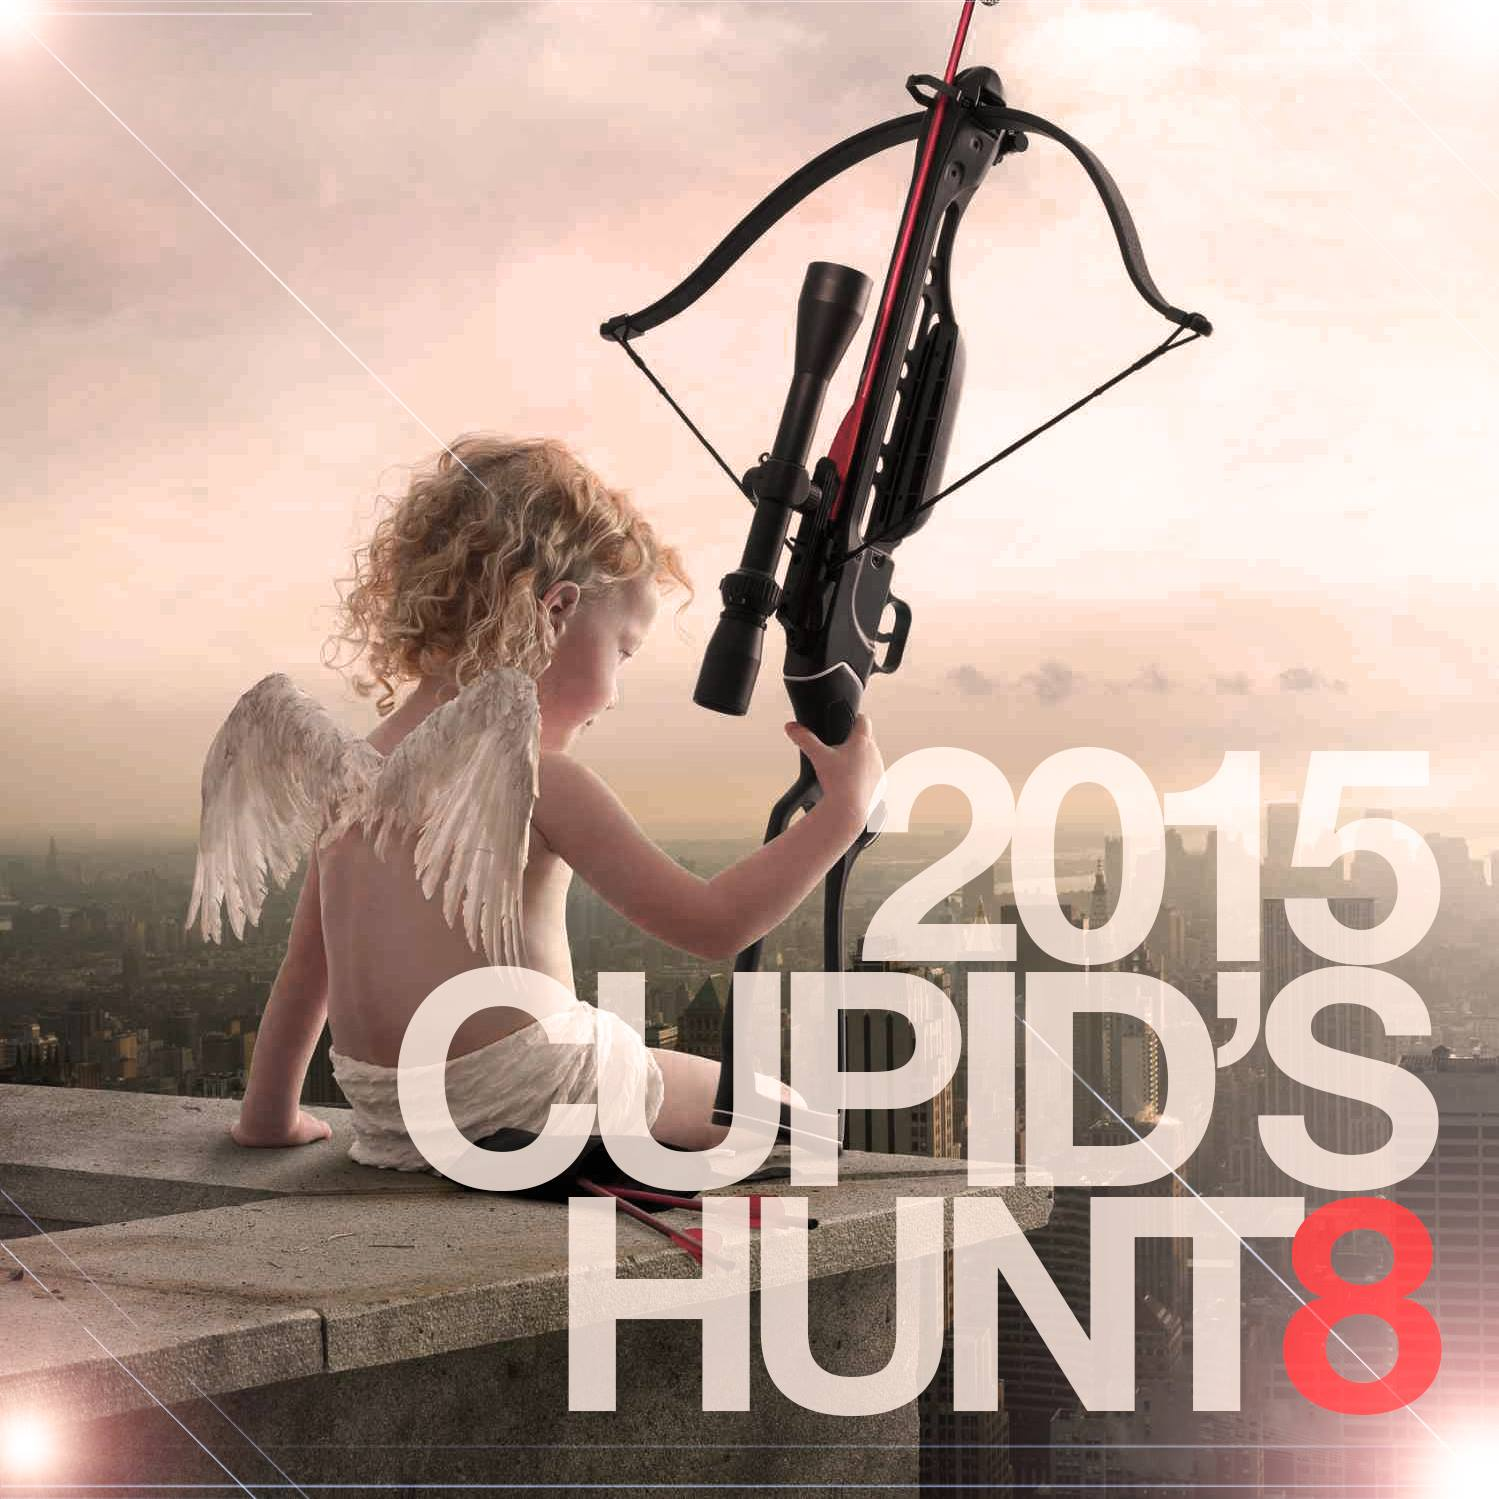 Cupid's Hunt, 2015 – The Upside